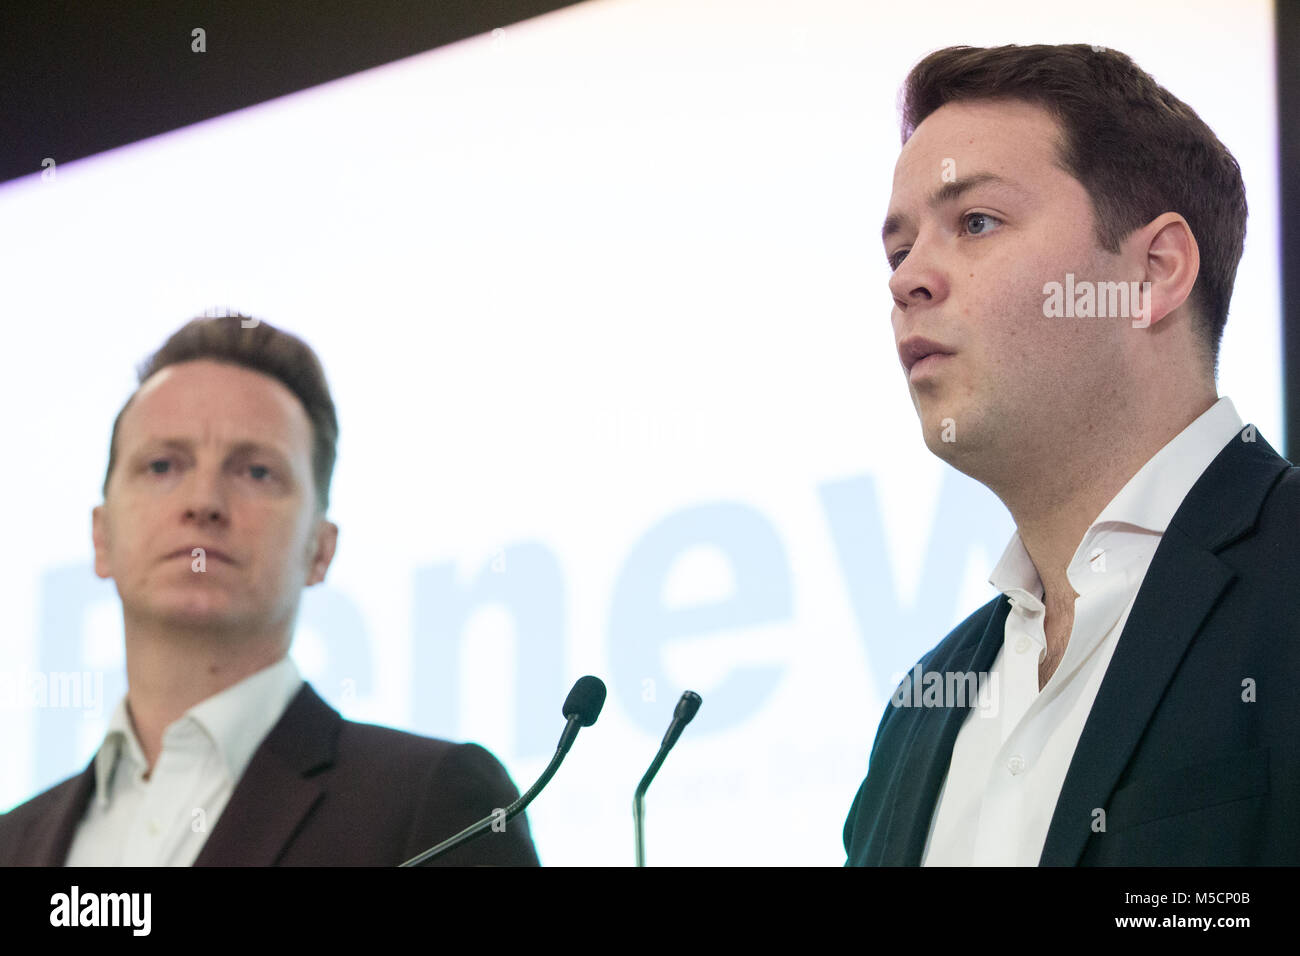 London, UK. 19th February, 2018. James Torrance, Head of Strategy, speaks at the launch of the Renew Political Party - Stock Image